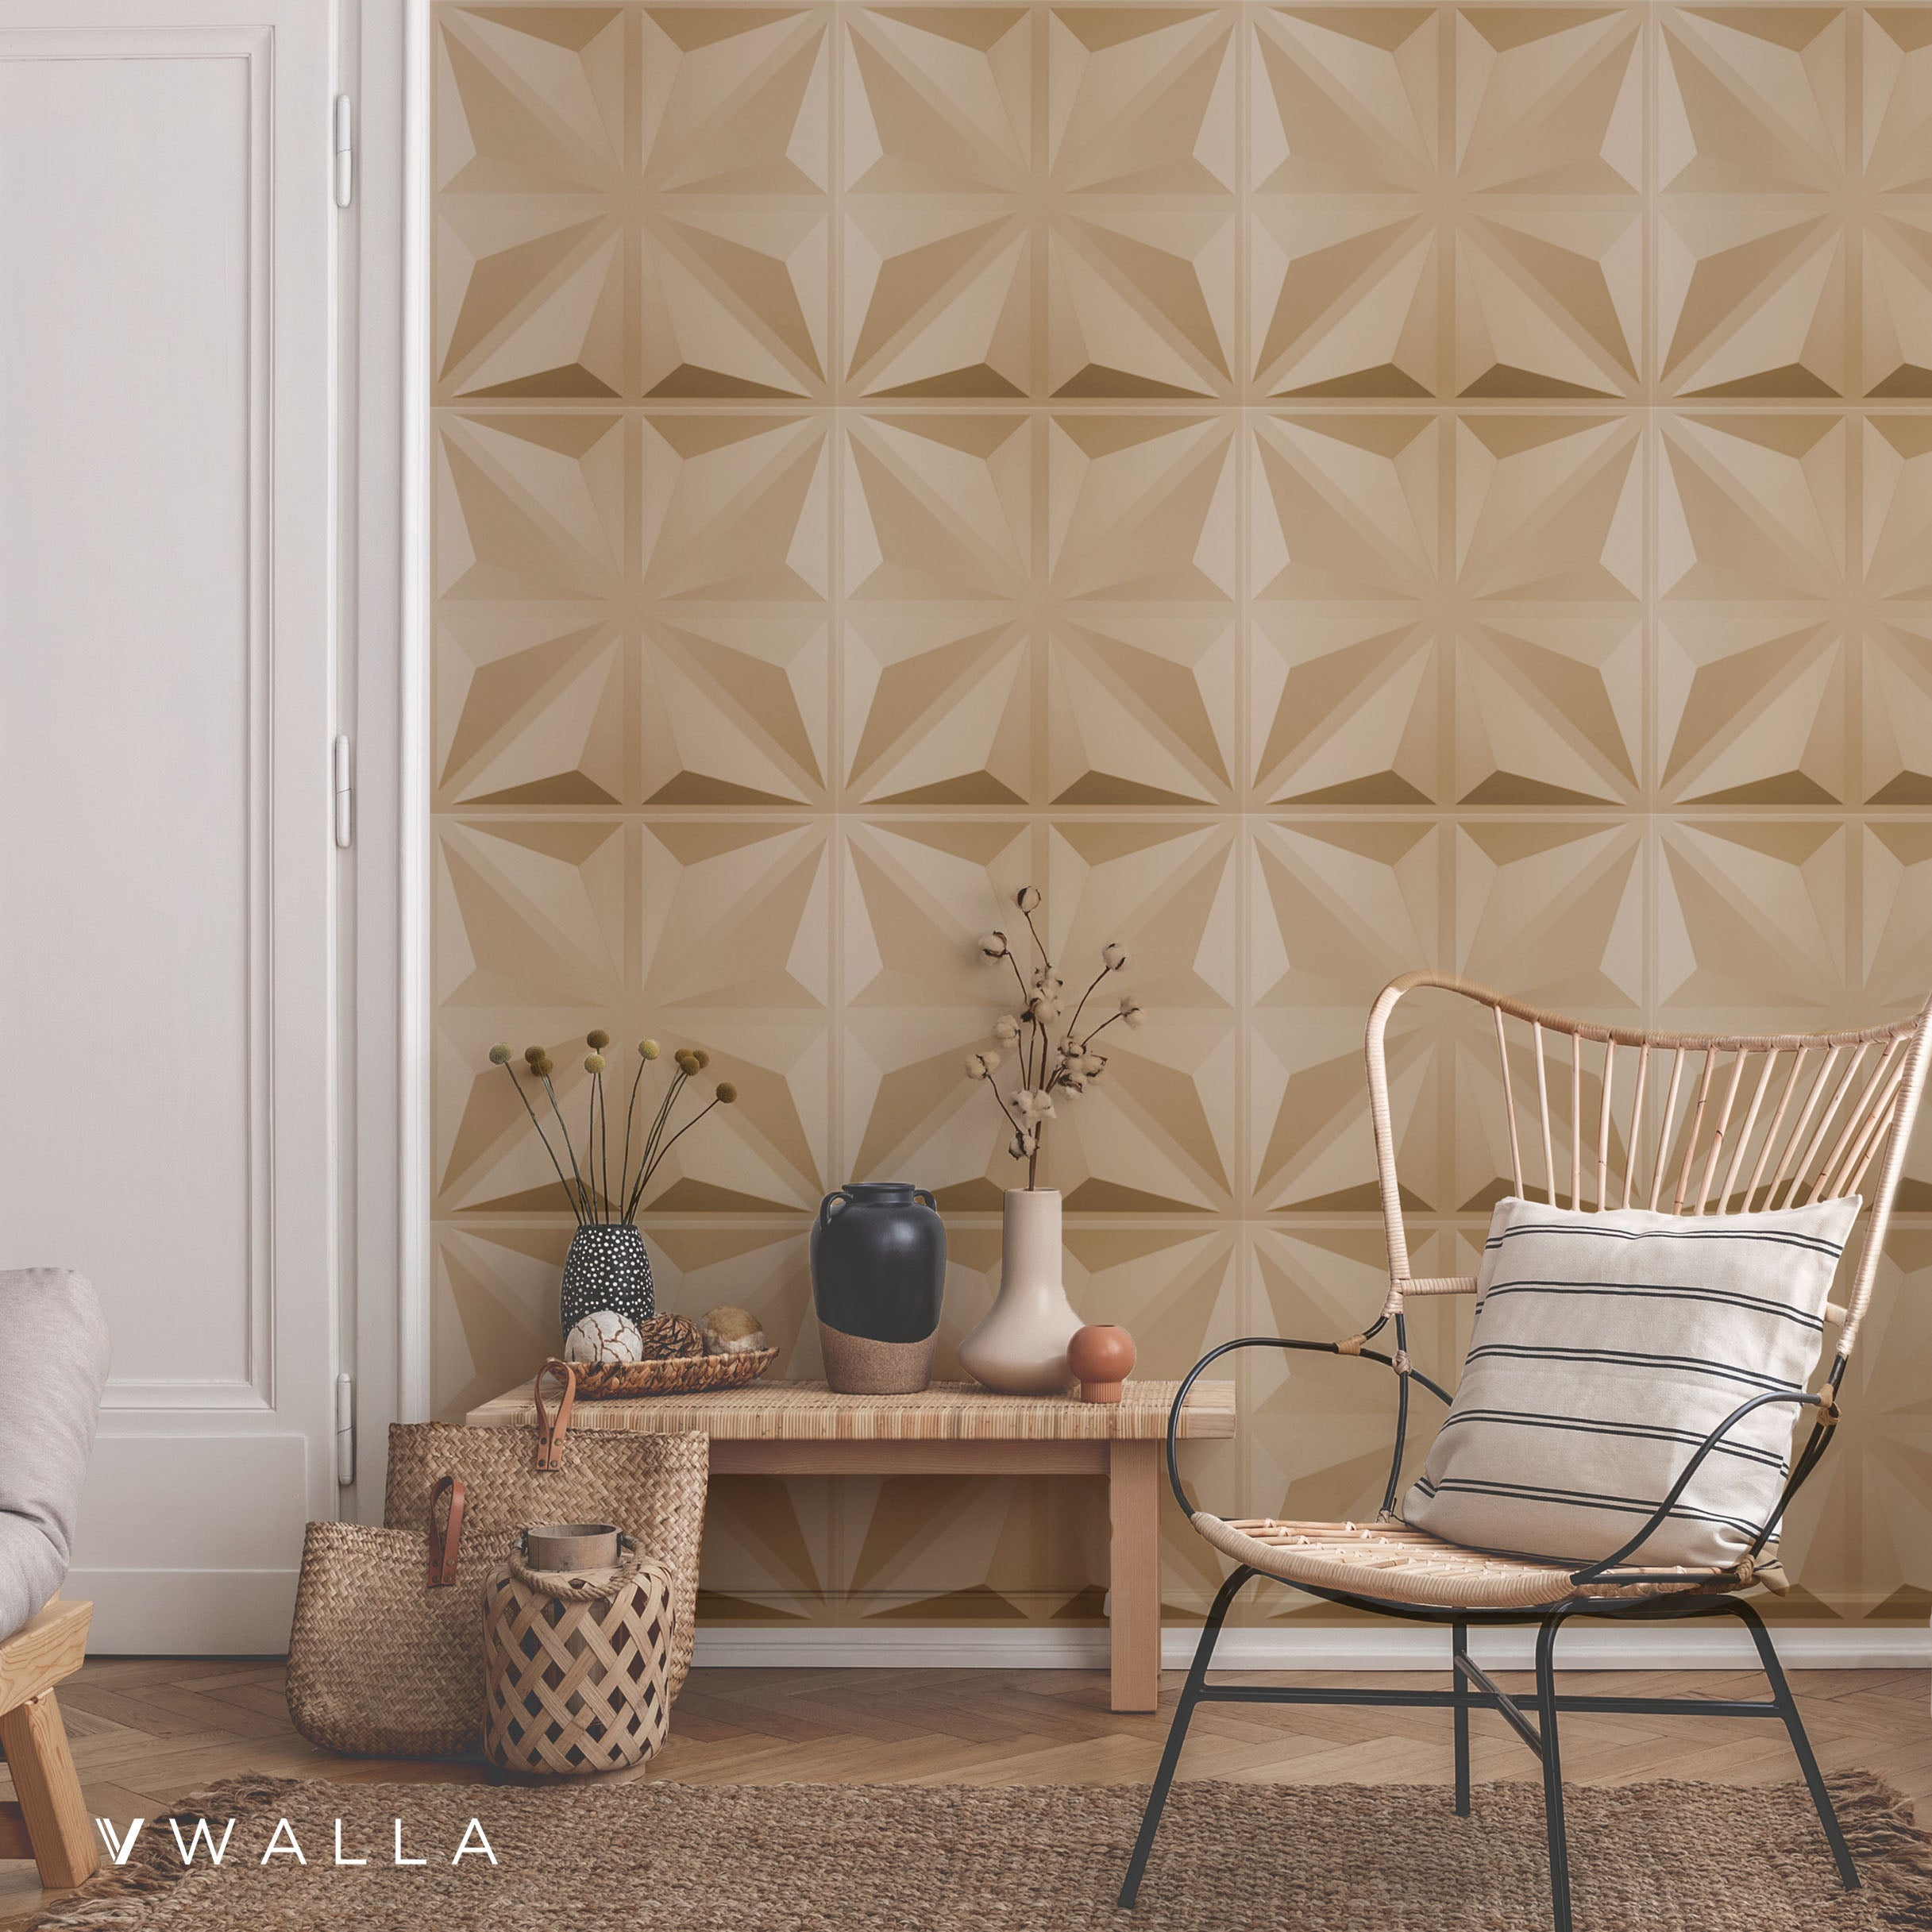 3D Wall Panel - Isosceles